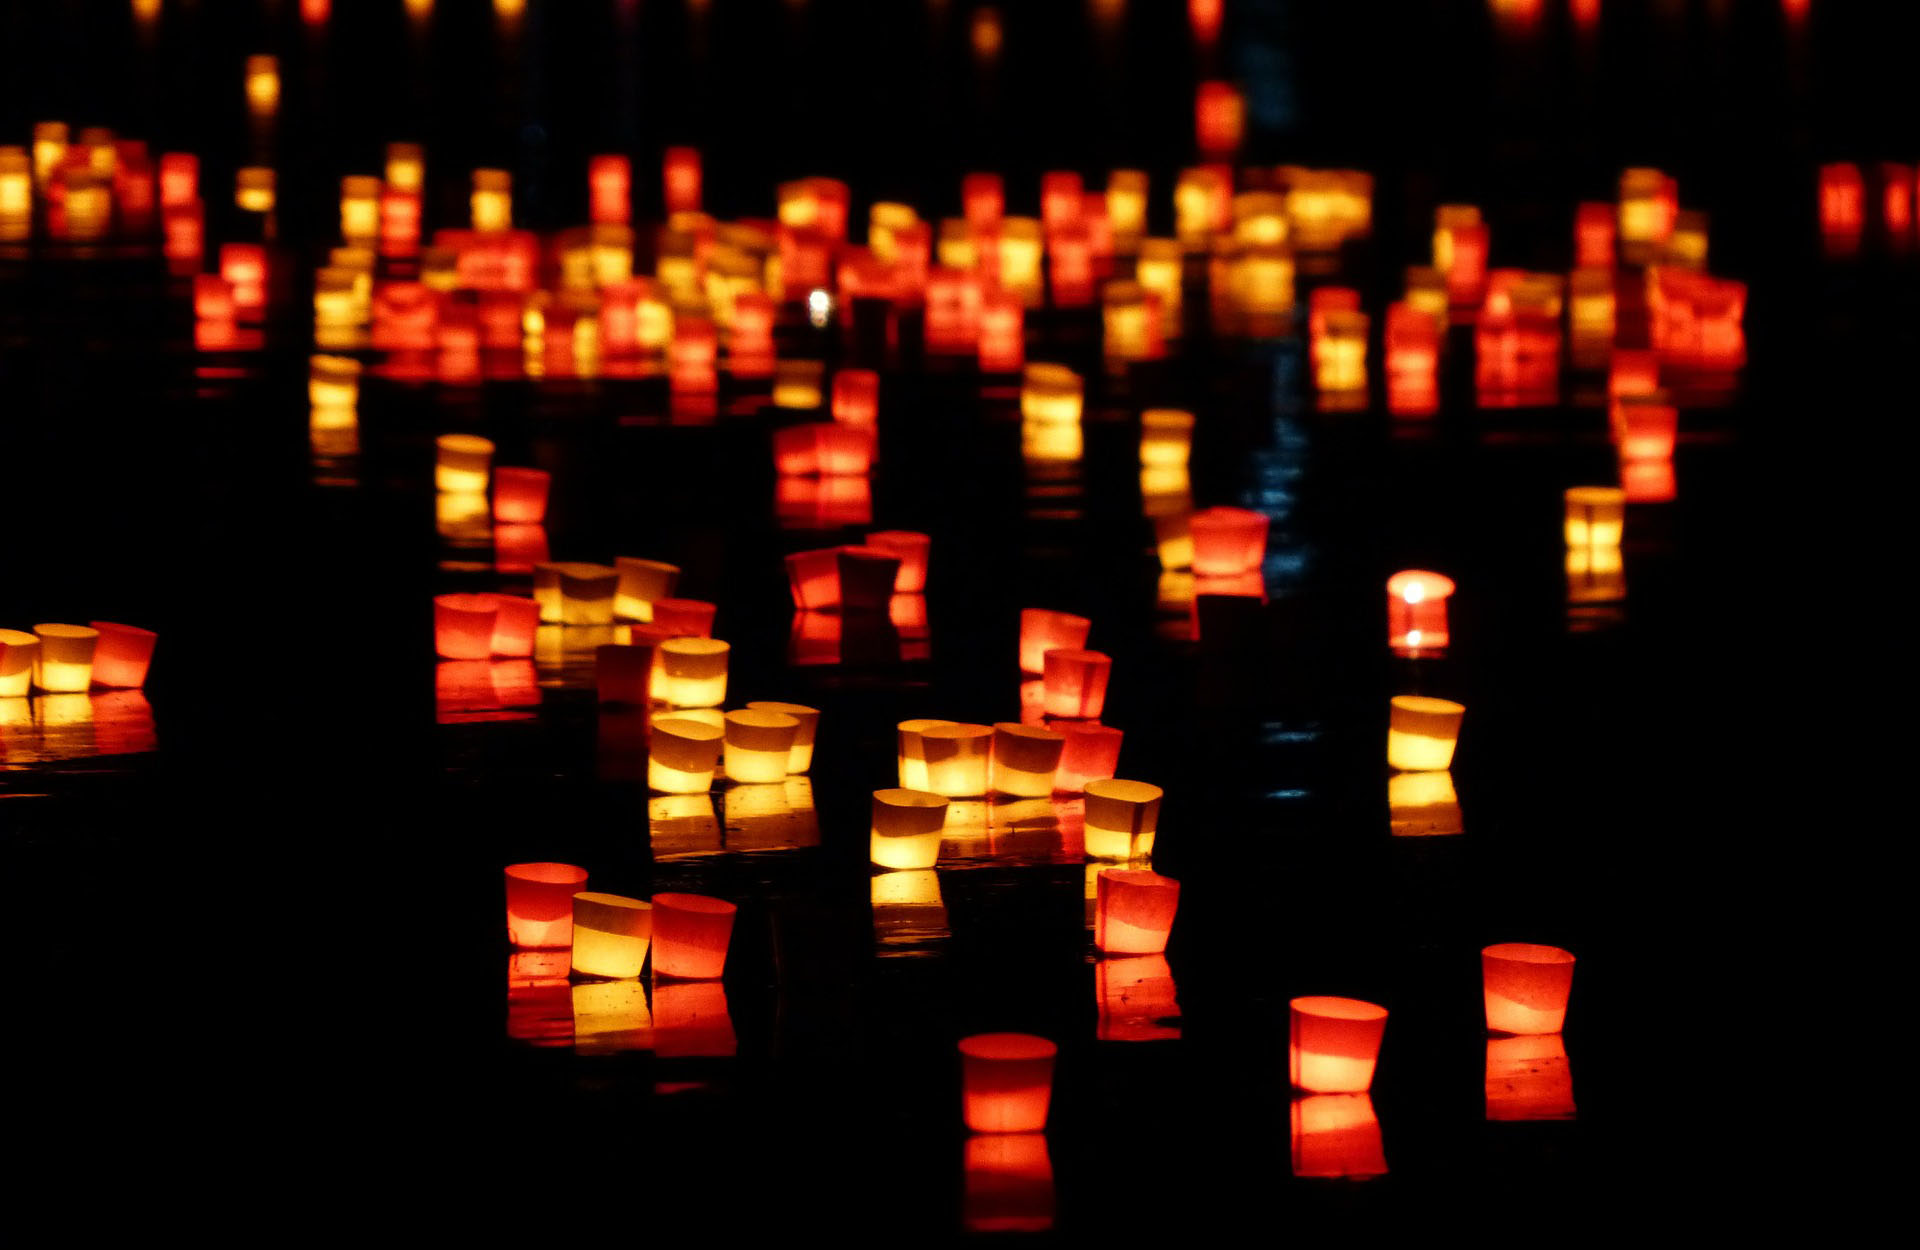 candles-168011_1920 a